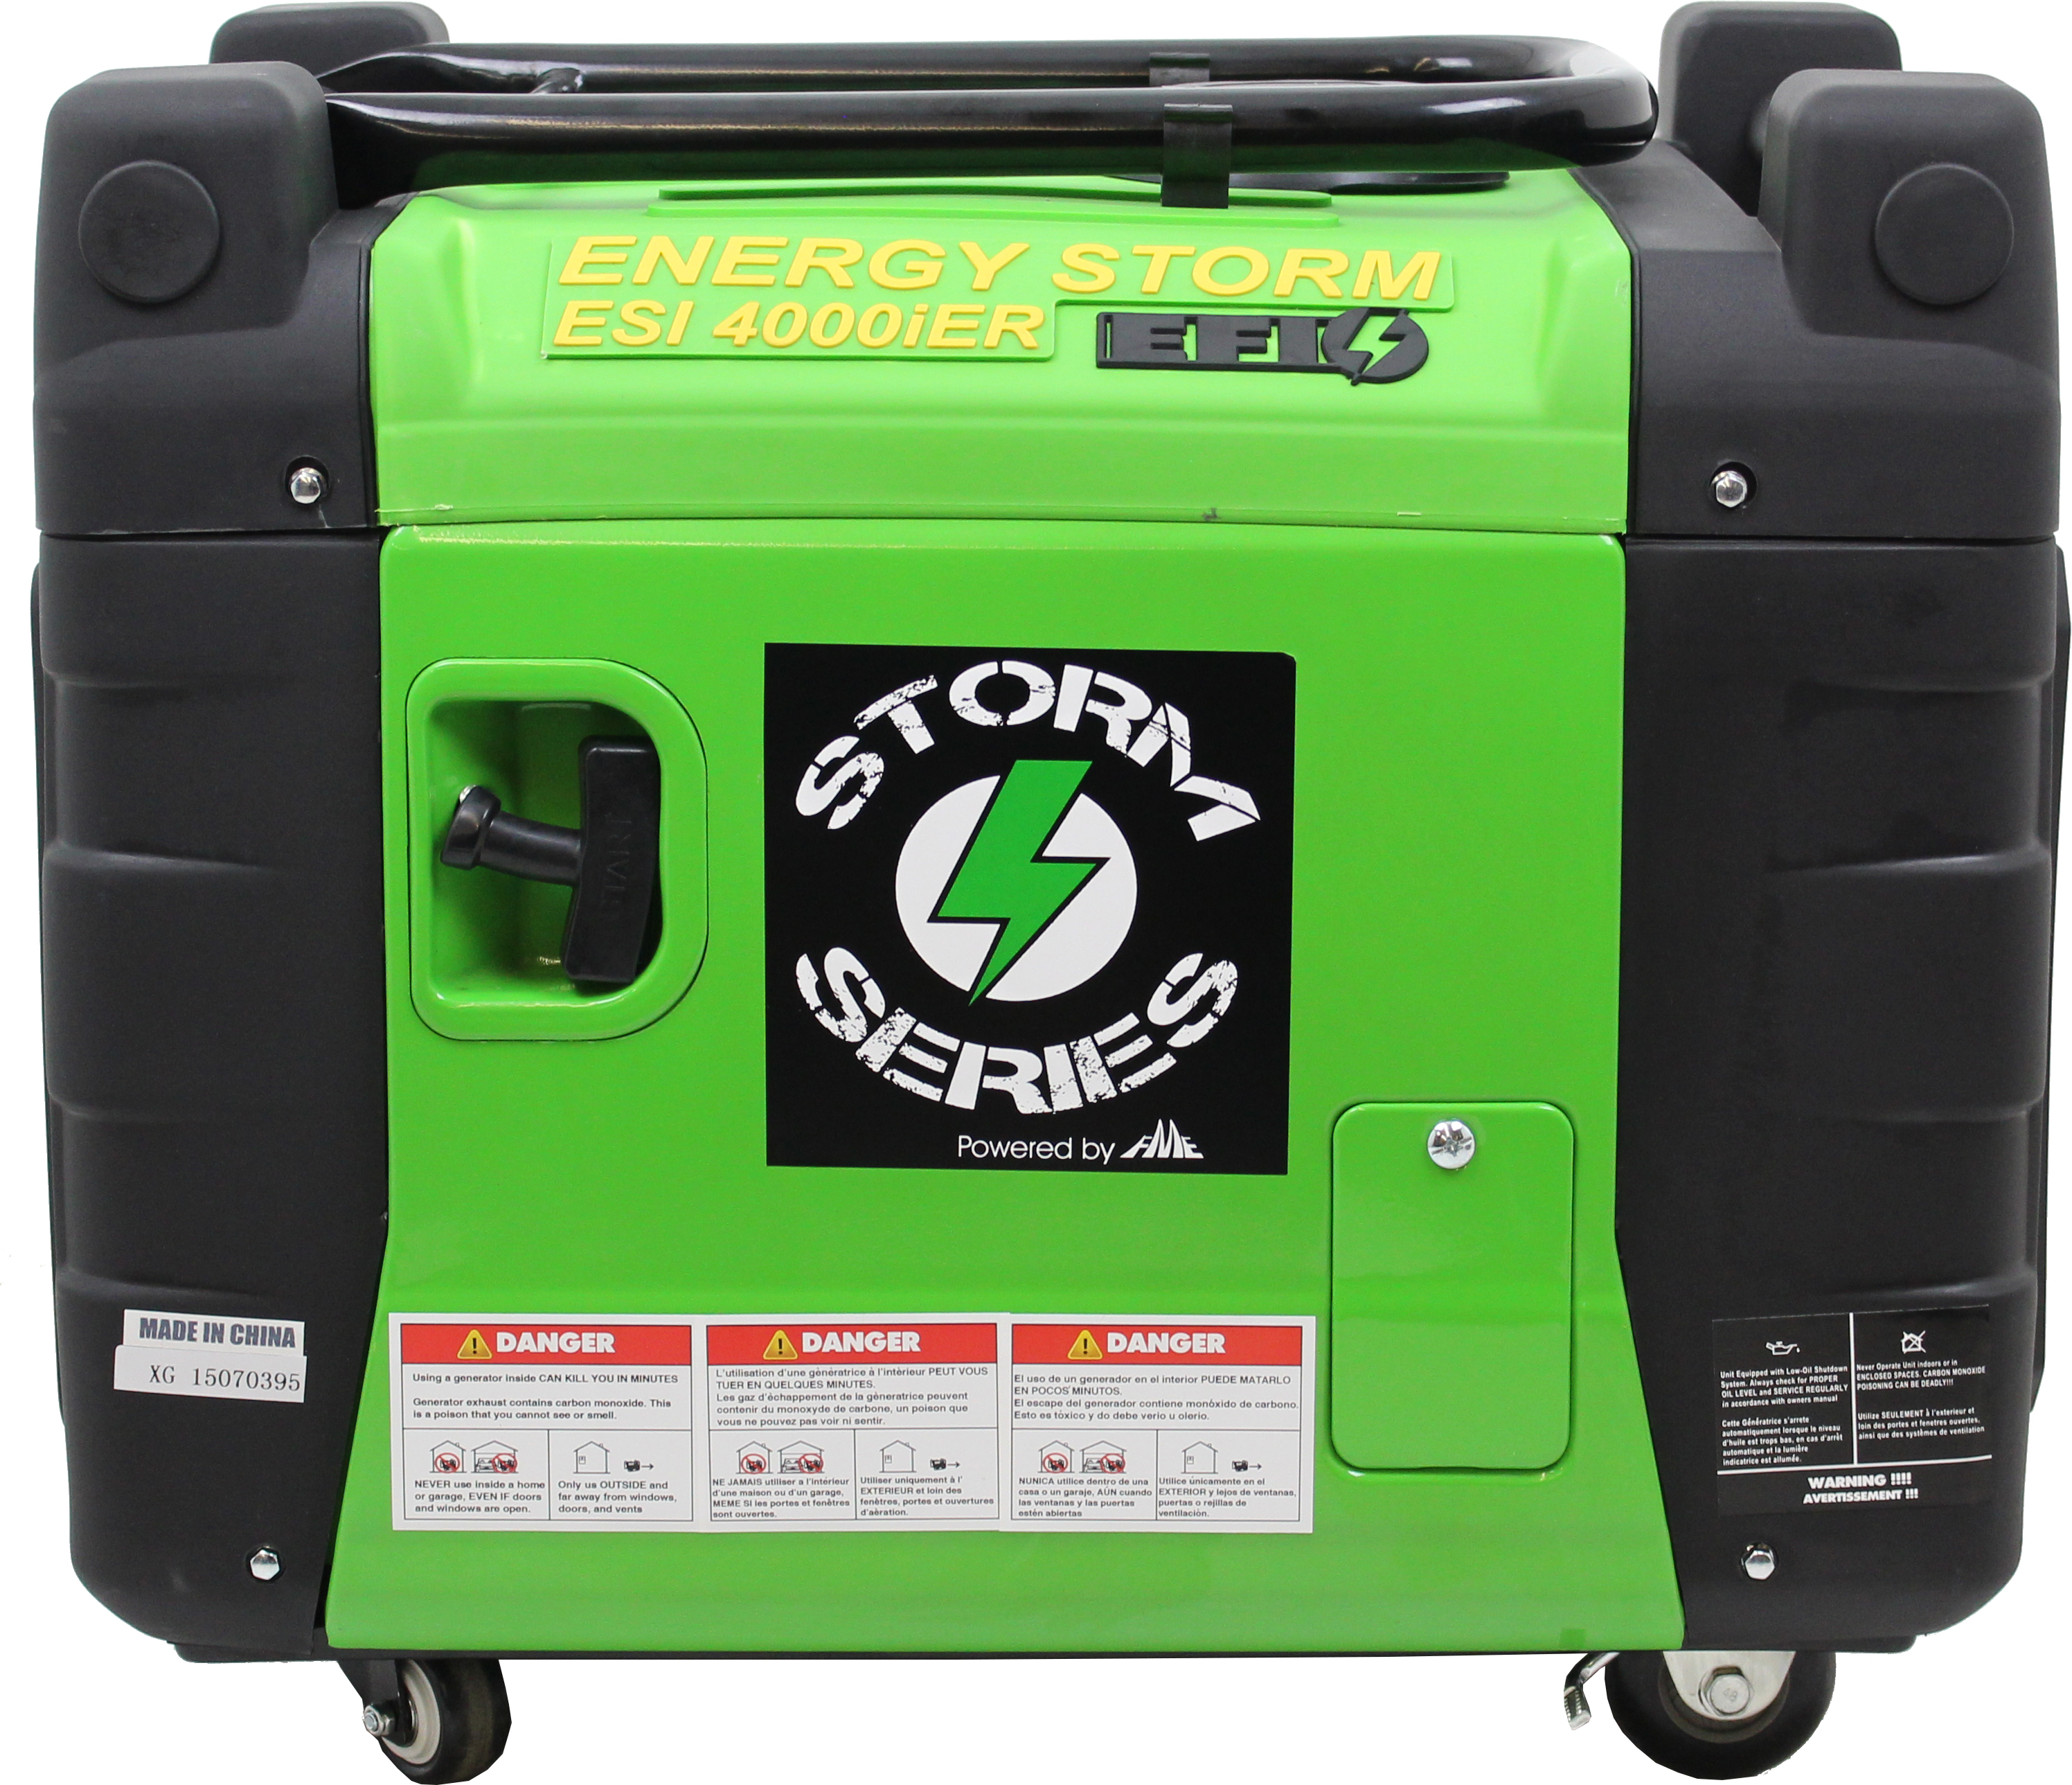 Pouf Exterieur Canadian Tire Energy Storm Esi4000ier Efi Features Remote Electric Start Stop Electronic Fuel Injected Gasoline Powered Digital Inverter Generator 50 State And